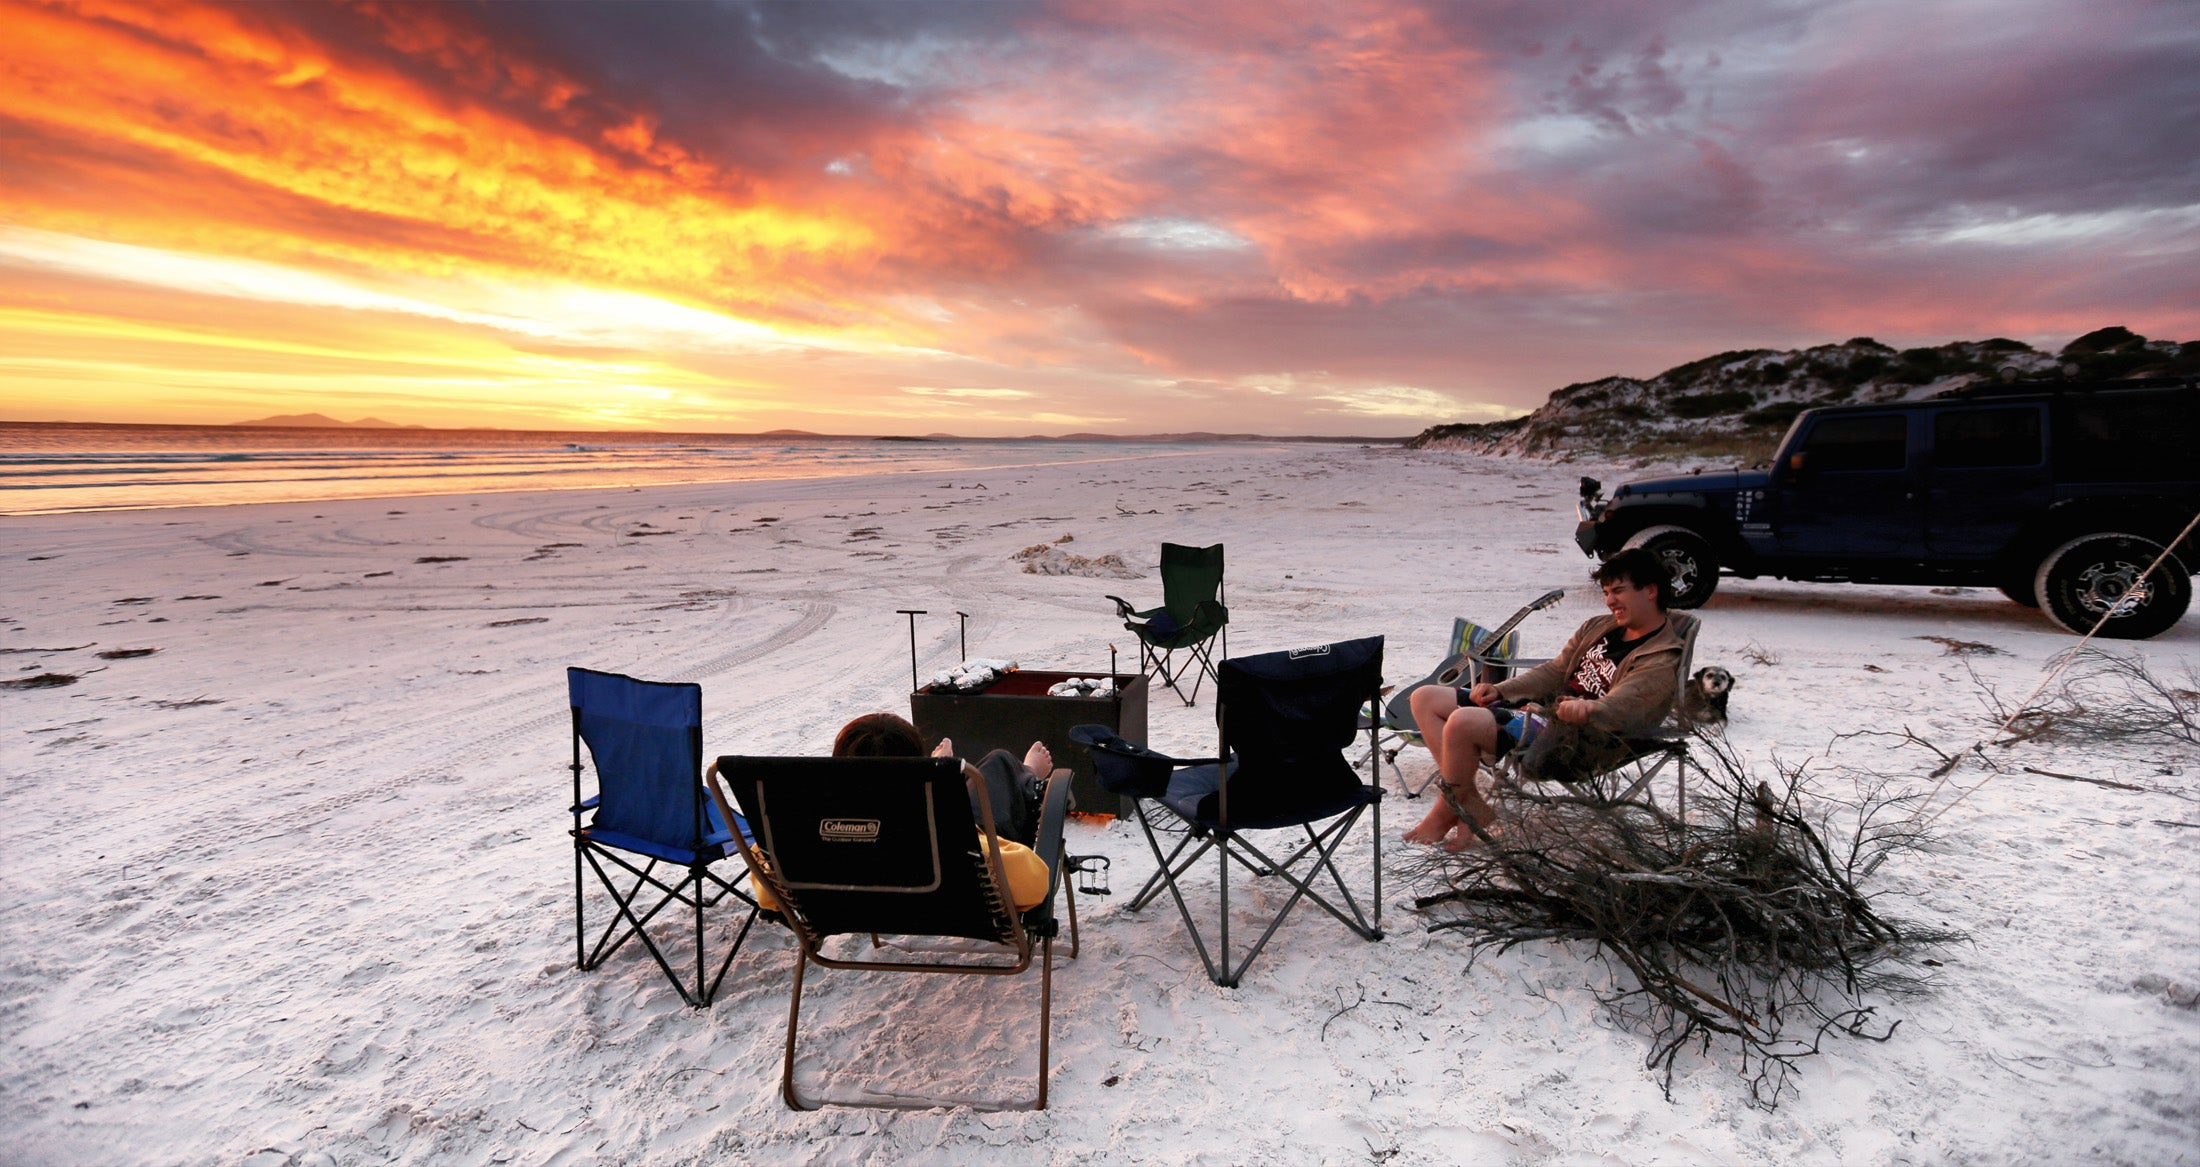 Beachside camping and campefires at night with an  Esperance Sunset.